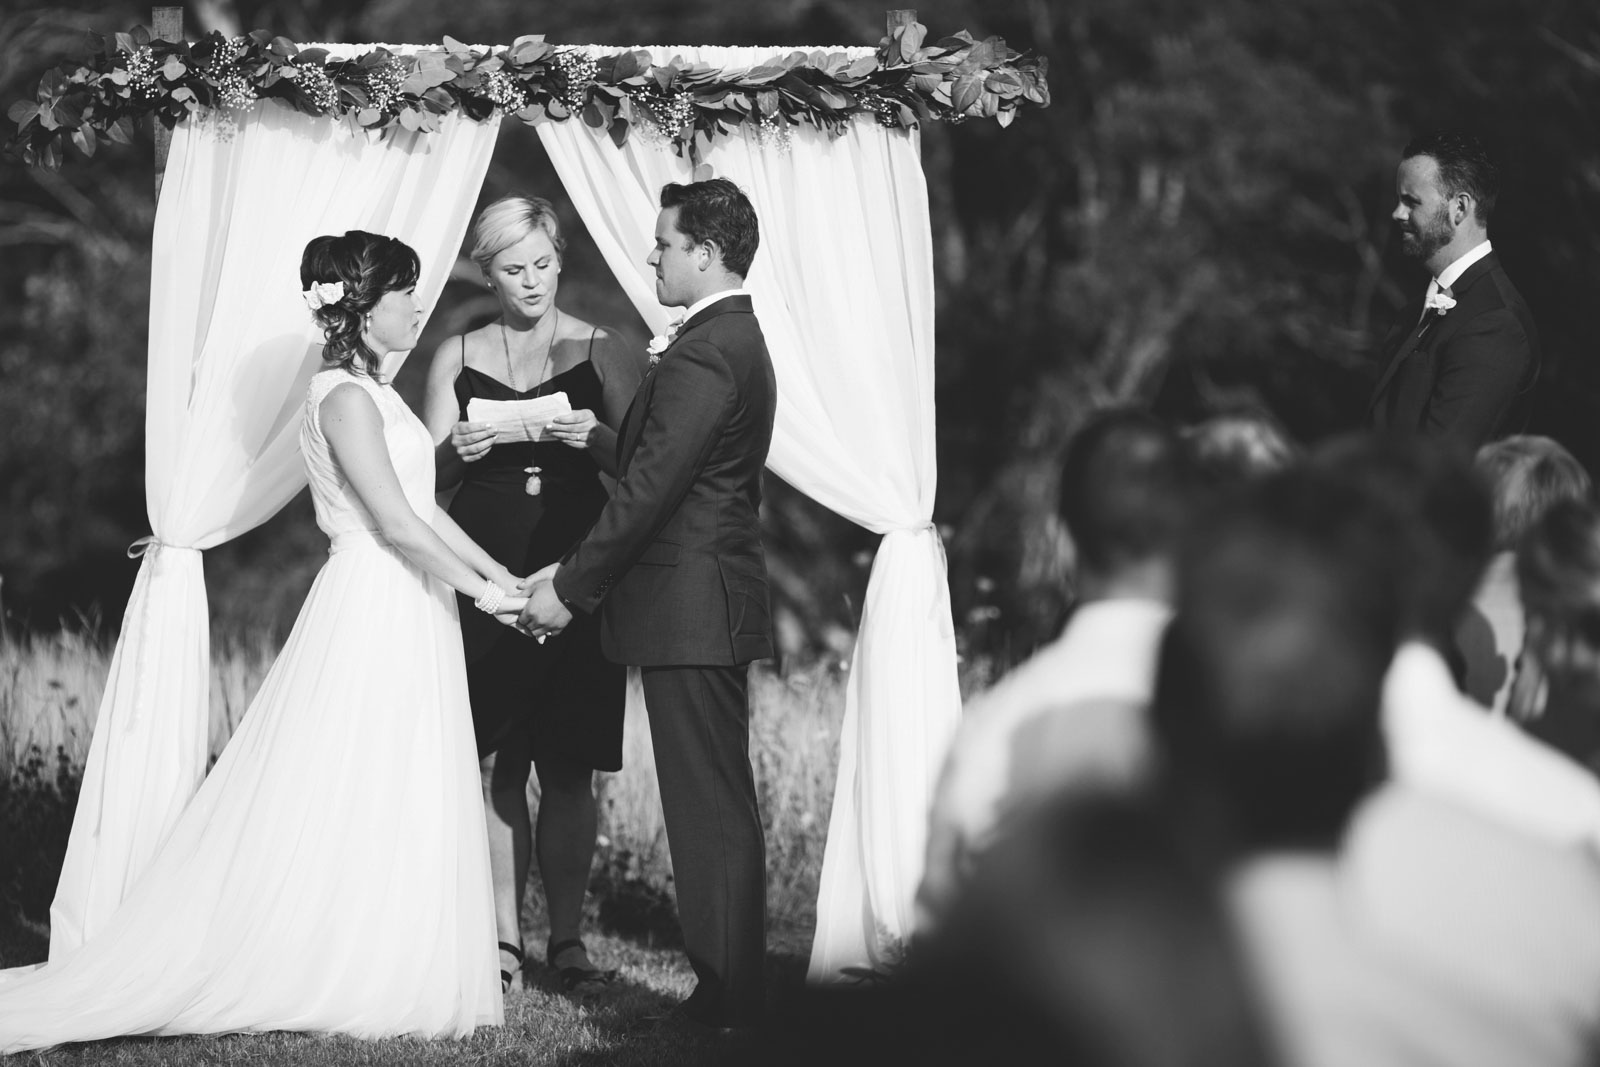 bride and groom hold hands and look into each other's eyes, romantic black and white